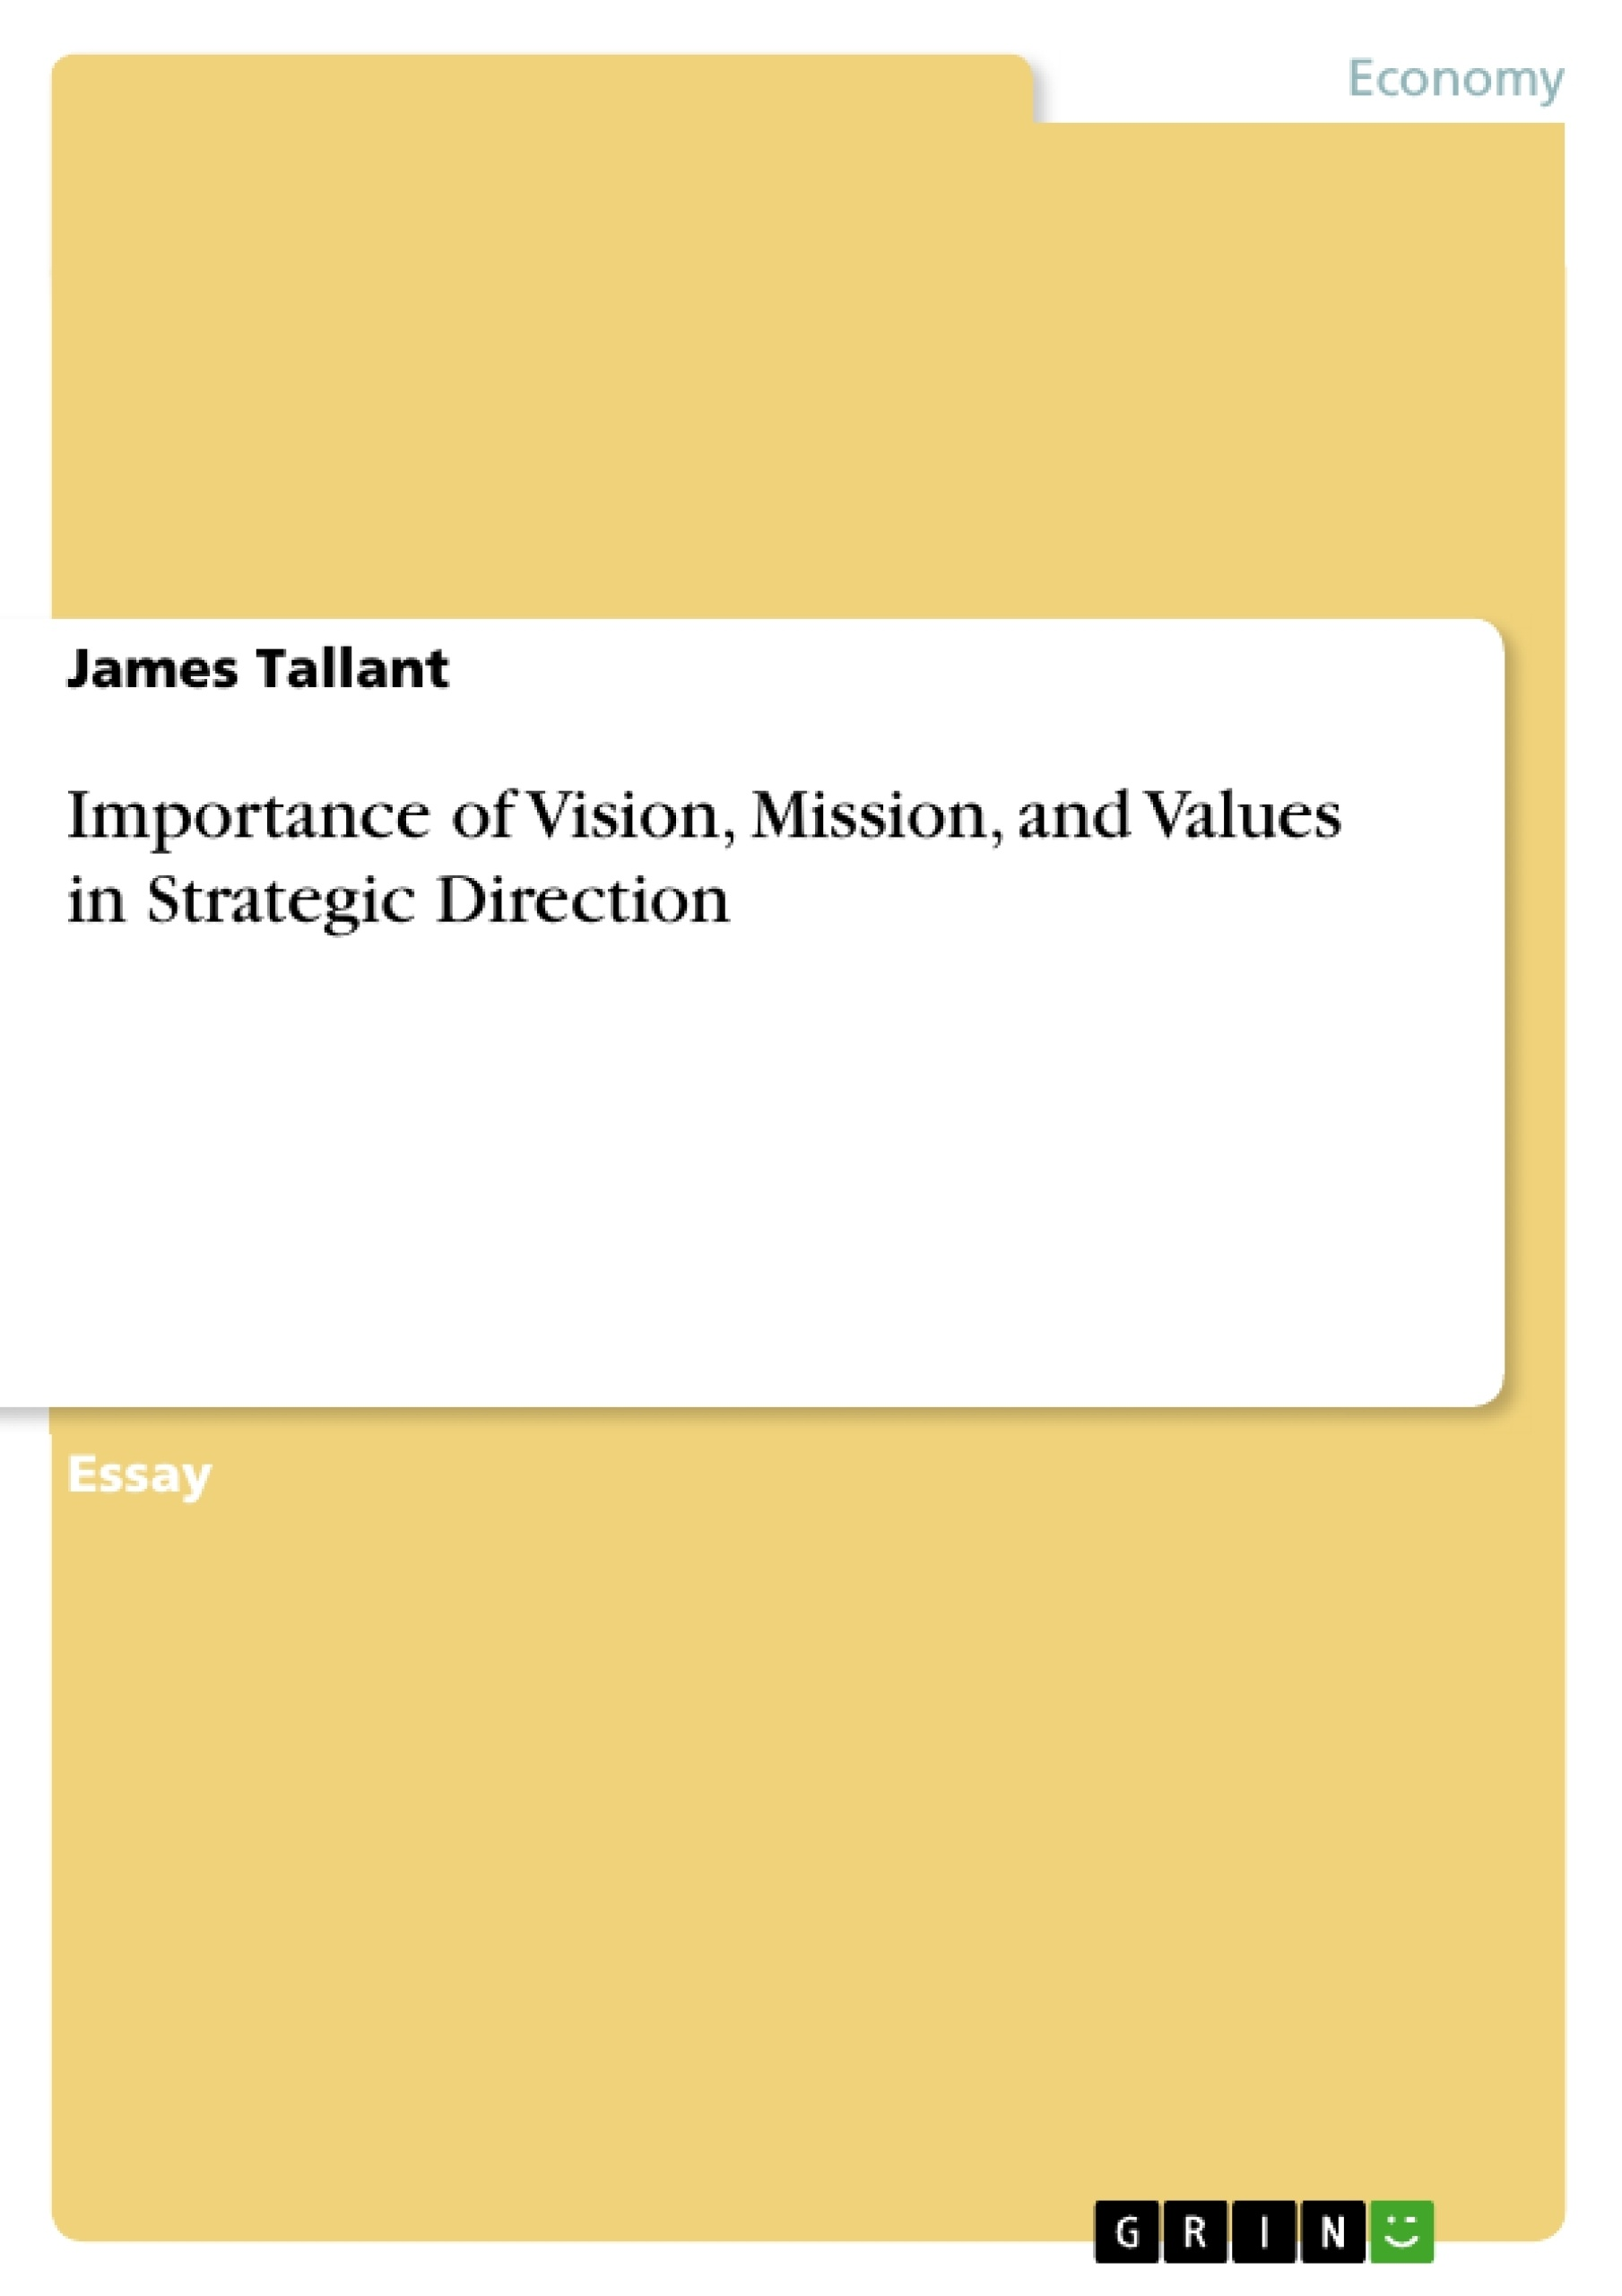 Importance of Vision, Mission, and Values in Strategic